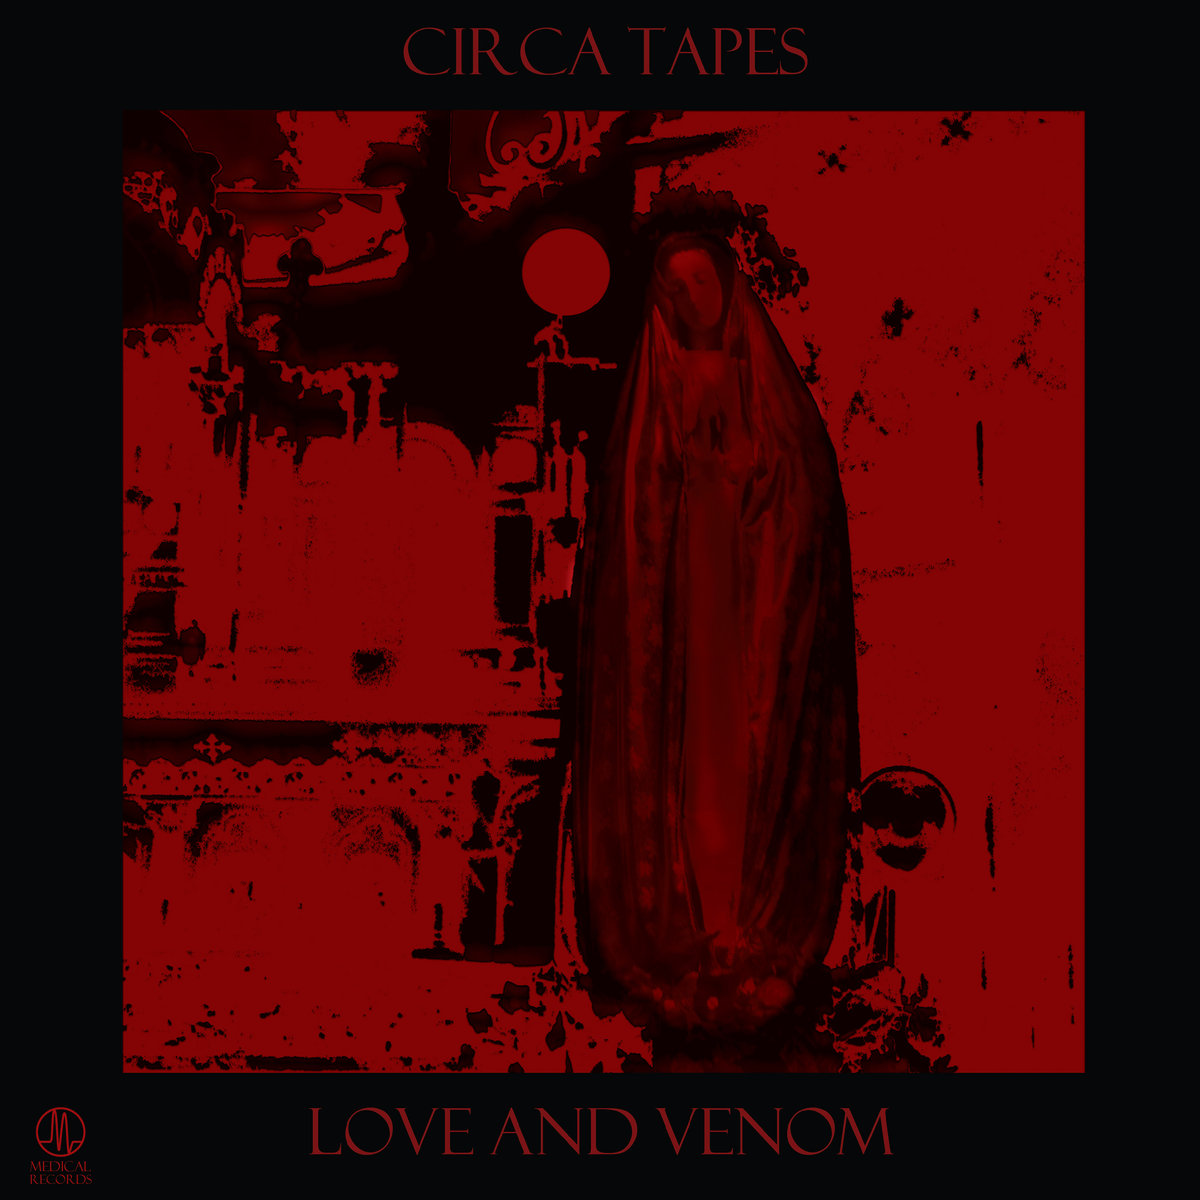 Circa Tapes - Love And Venom (LP; 2017)